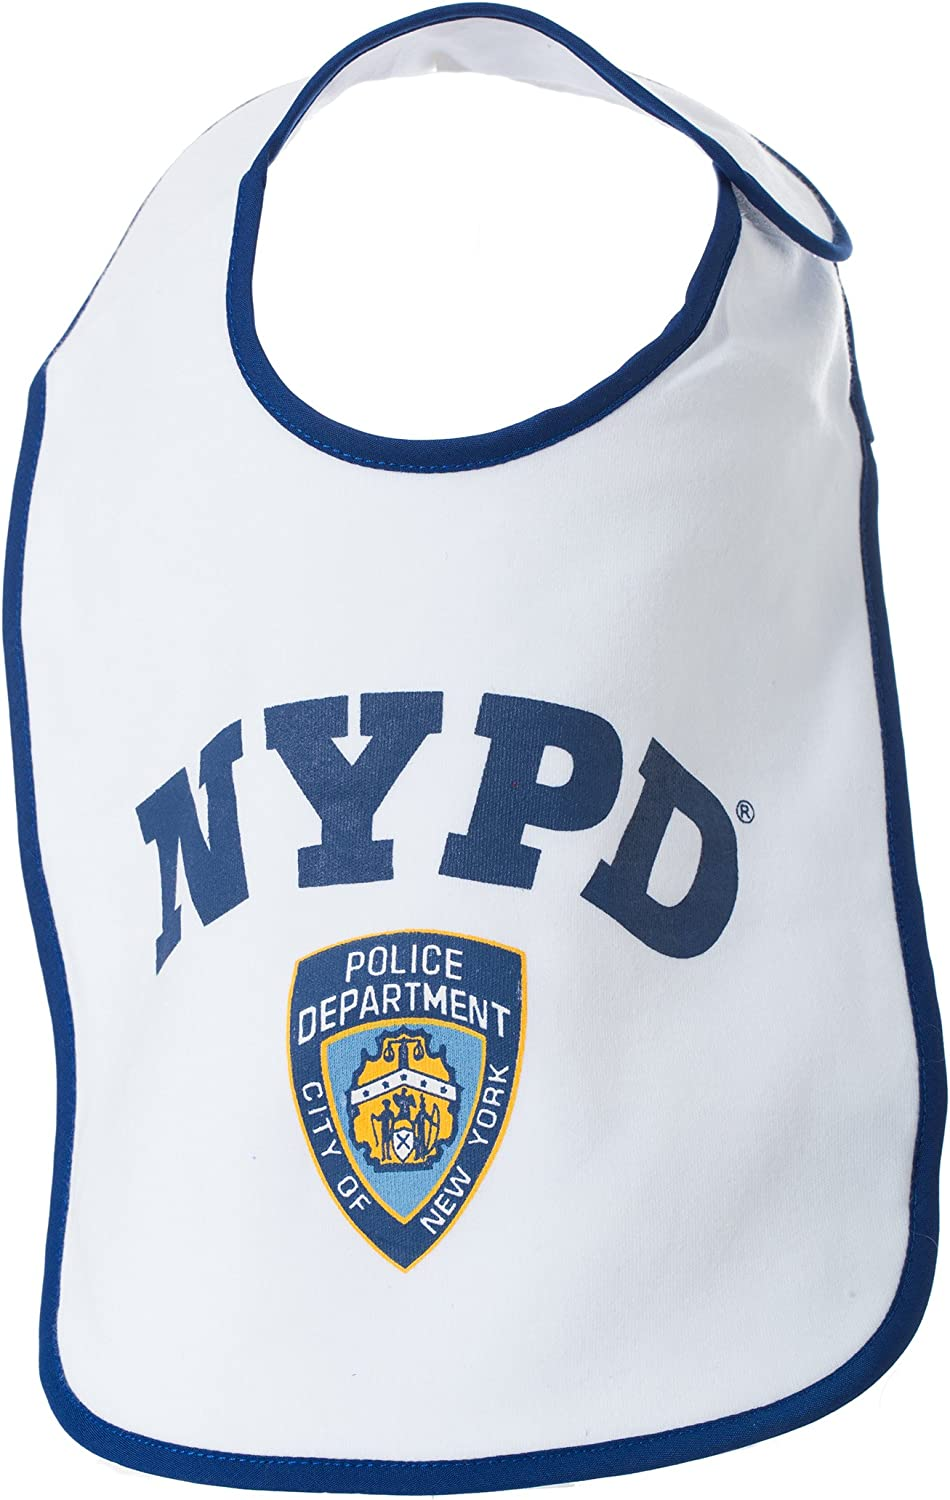 NYPD Baby Bib Logo - Officially Licensed New York City Police Department Gift